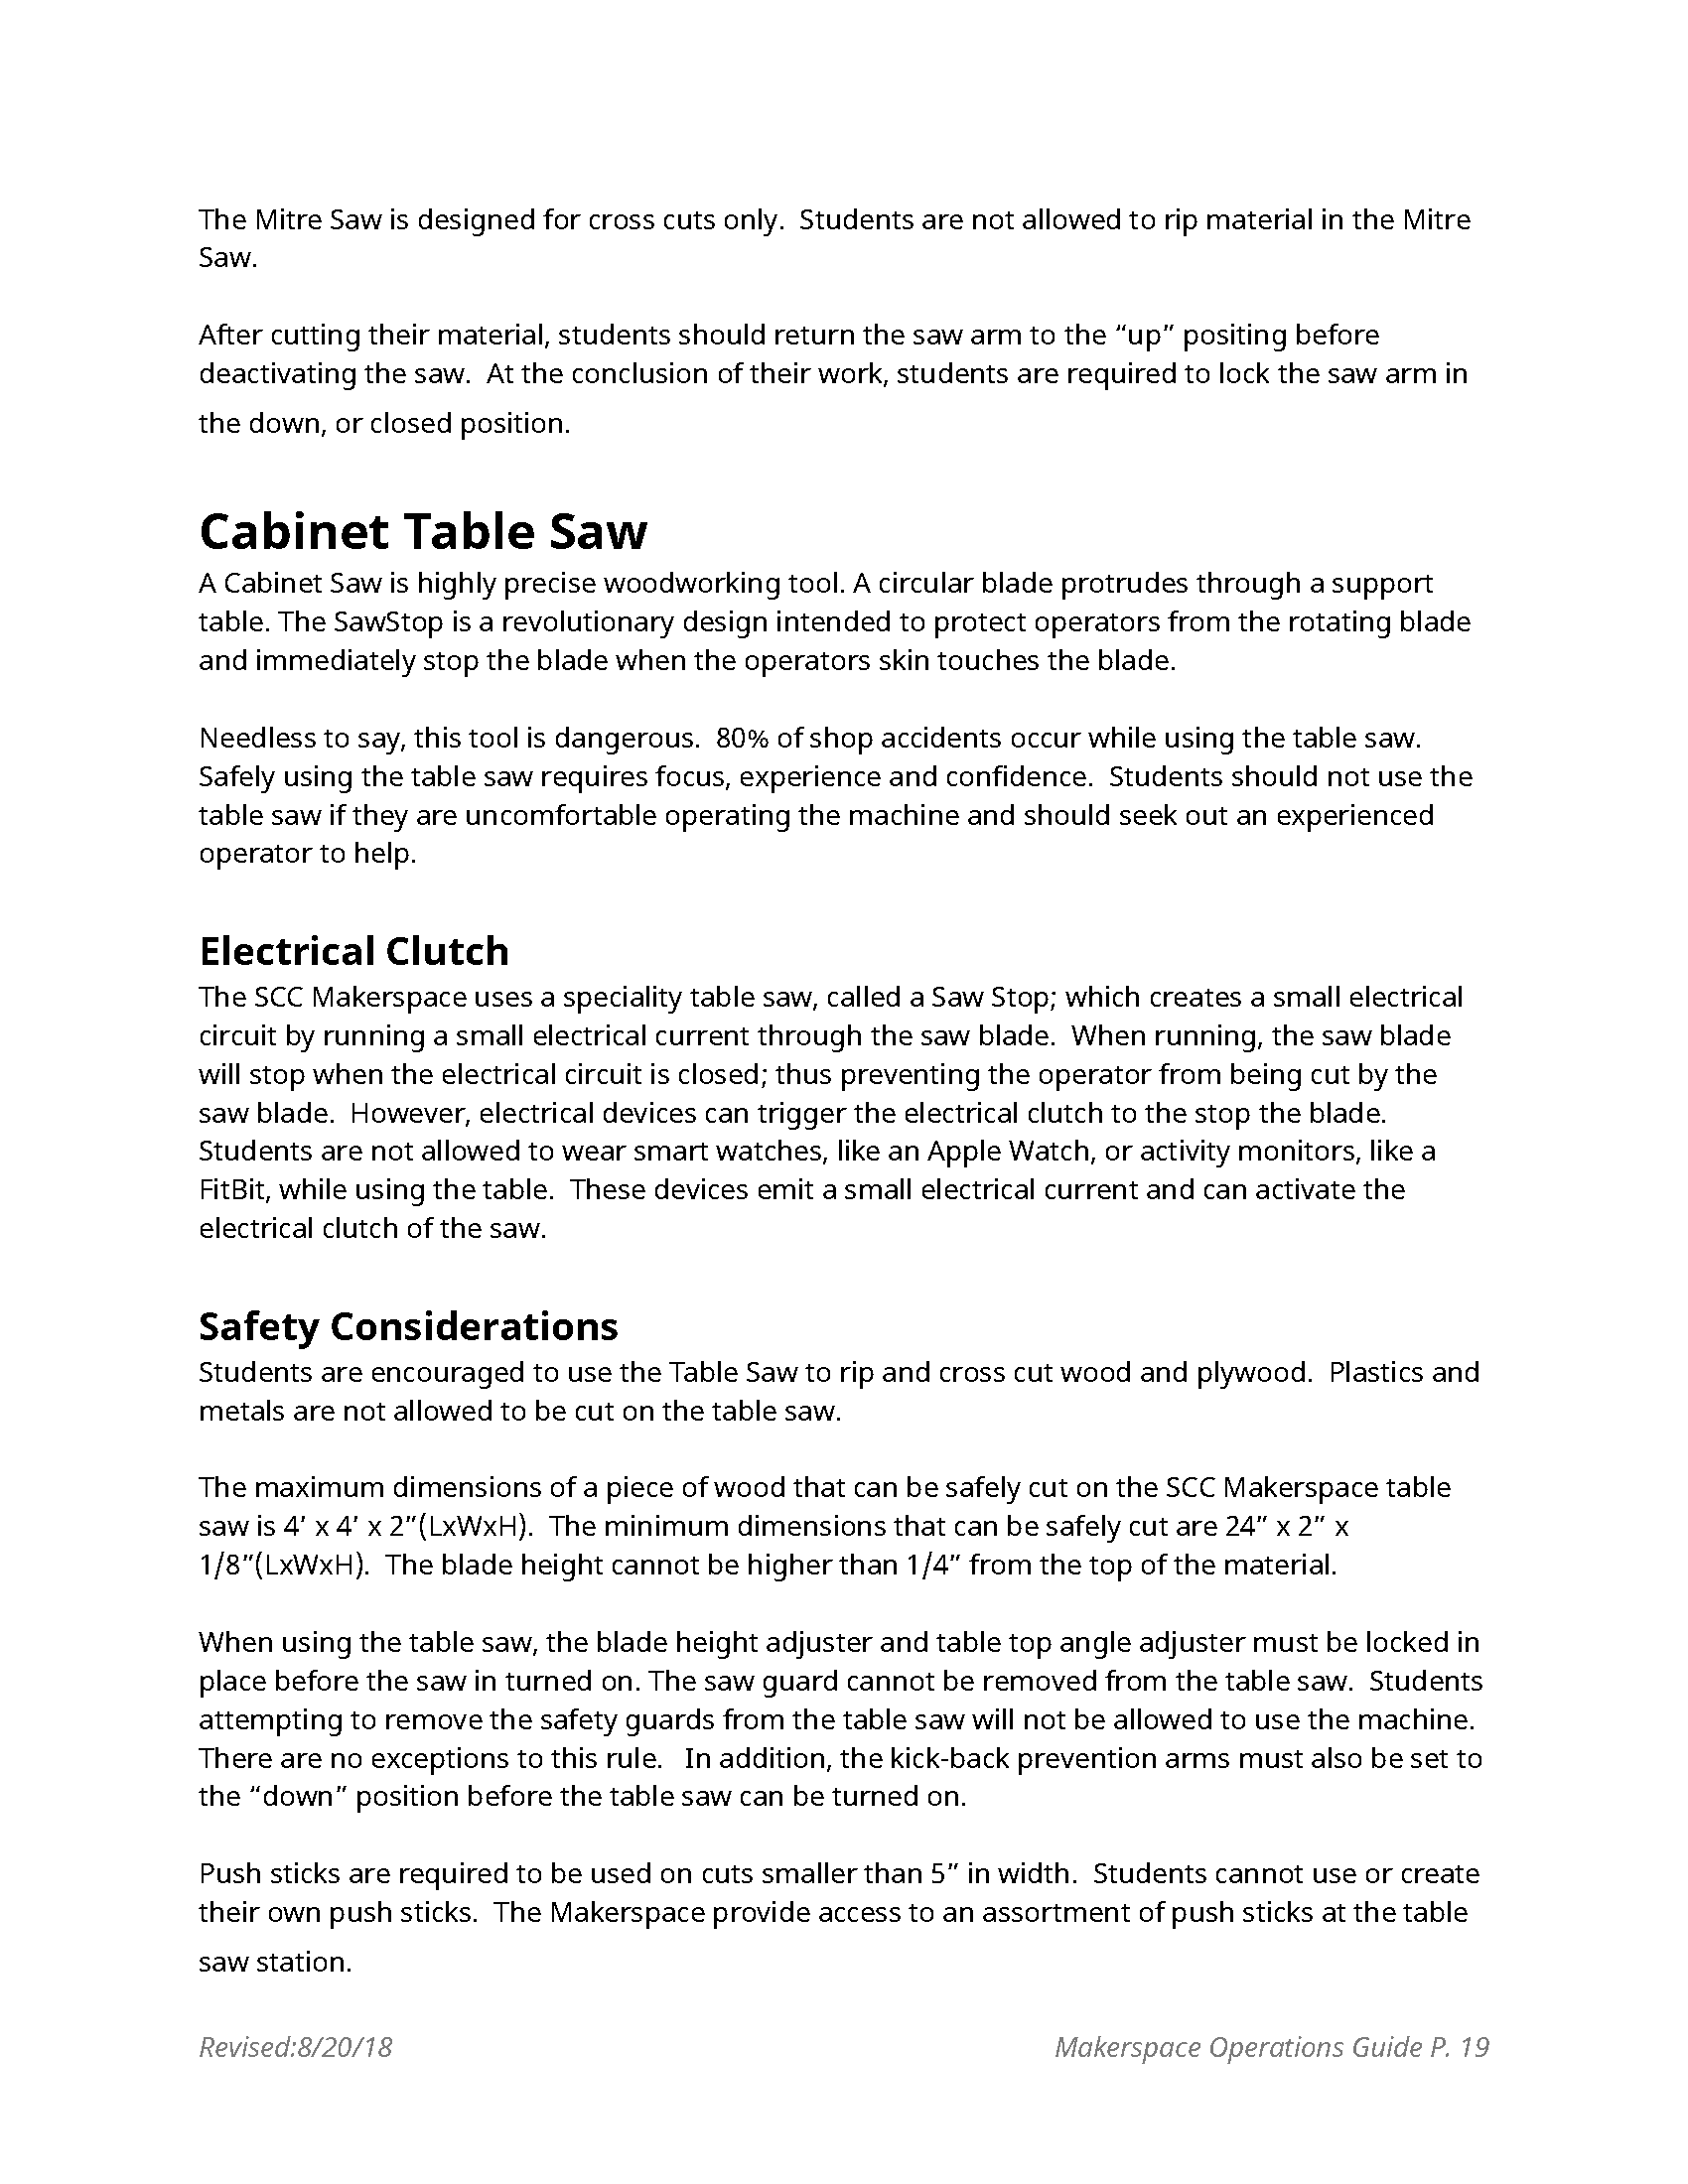 ms_ops_manual_8-20_Page_19.png